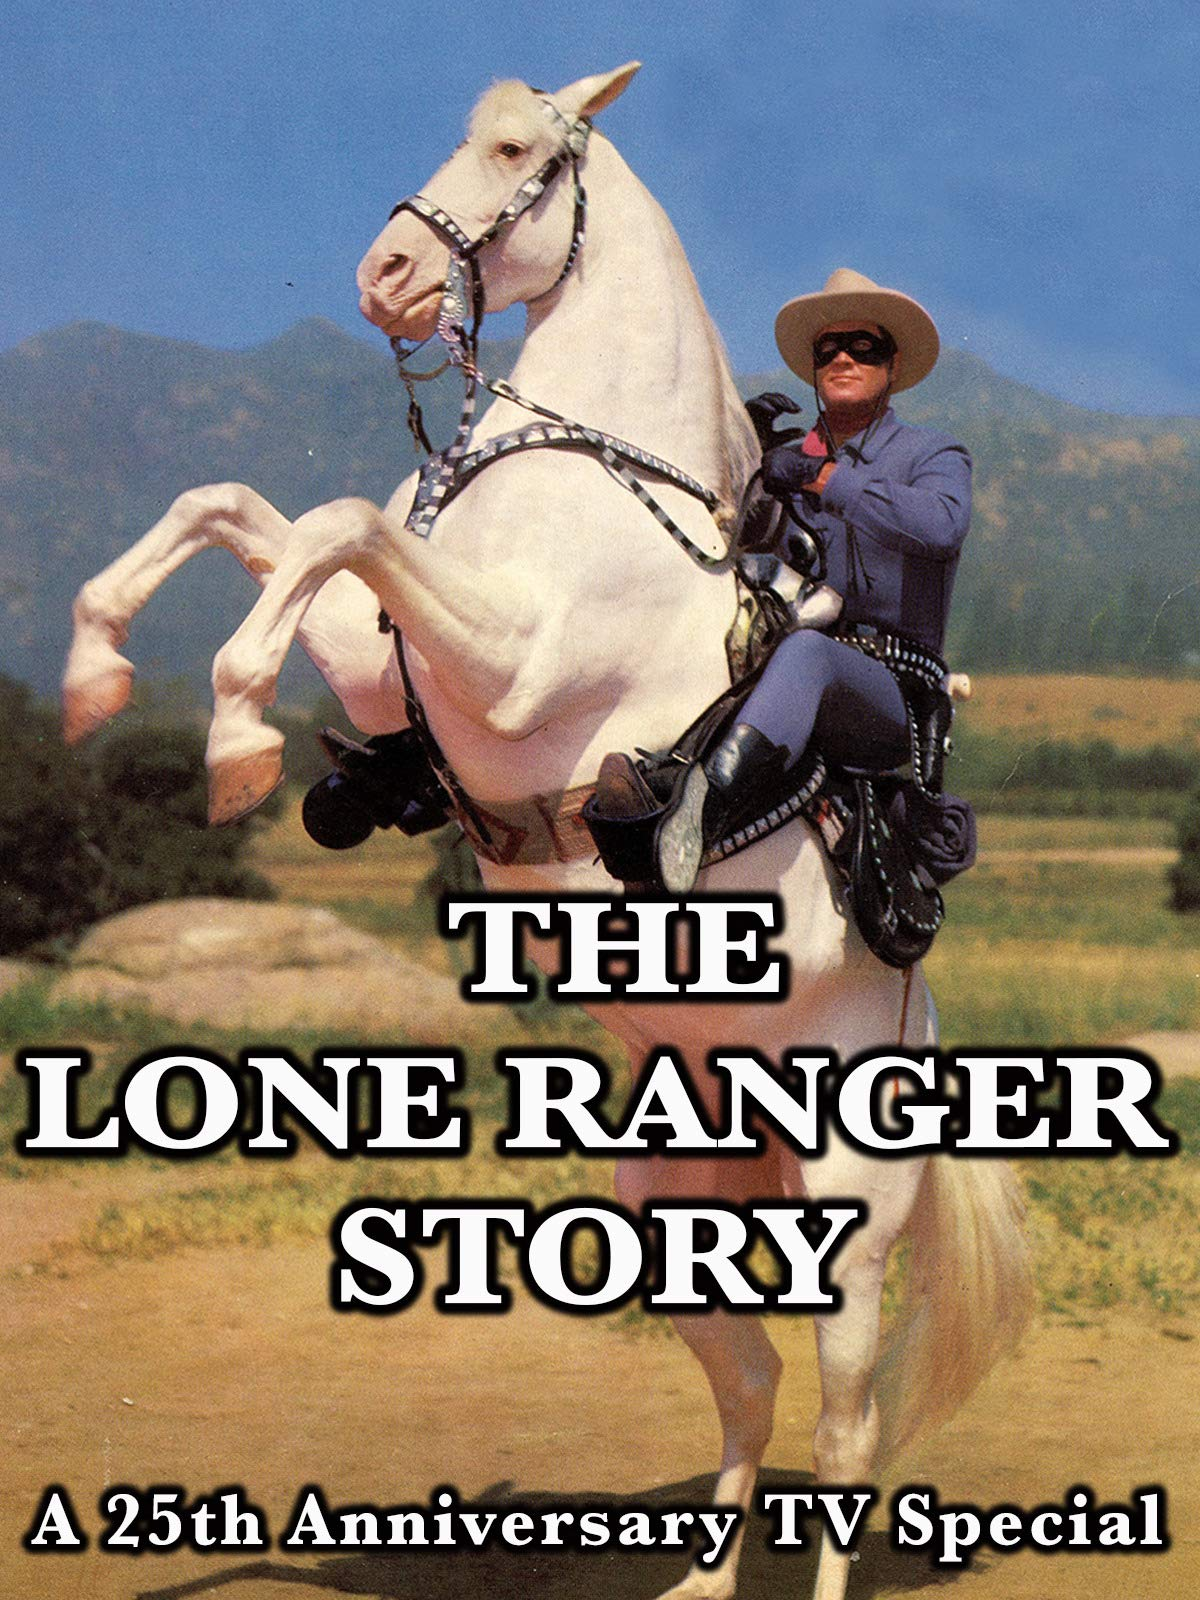 The Lone Ranger Story - A 25th Anniversary TV Special